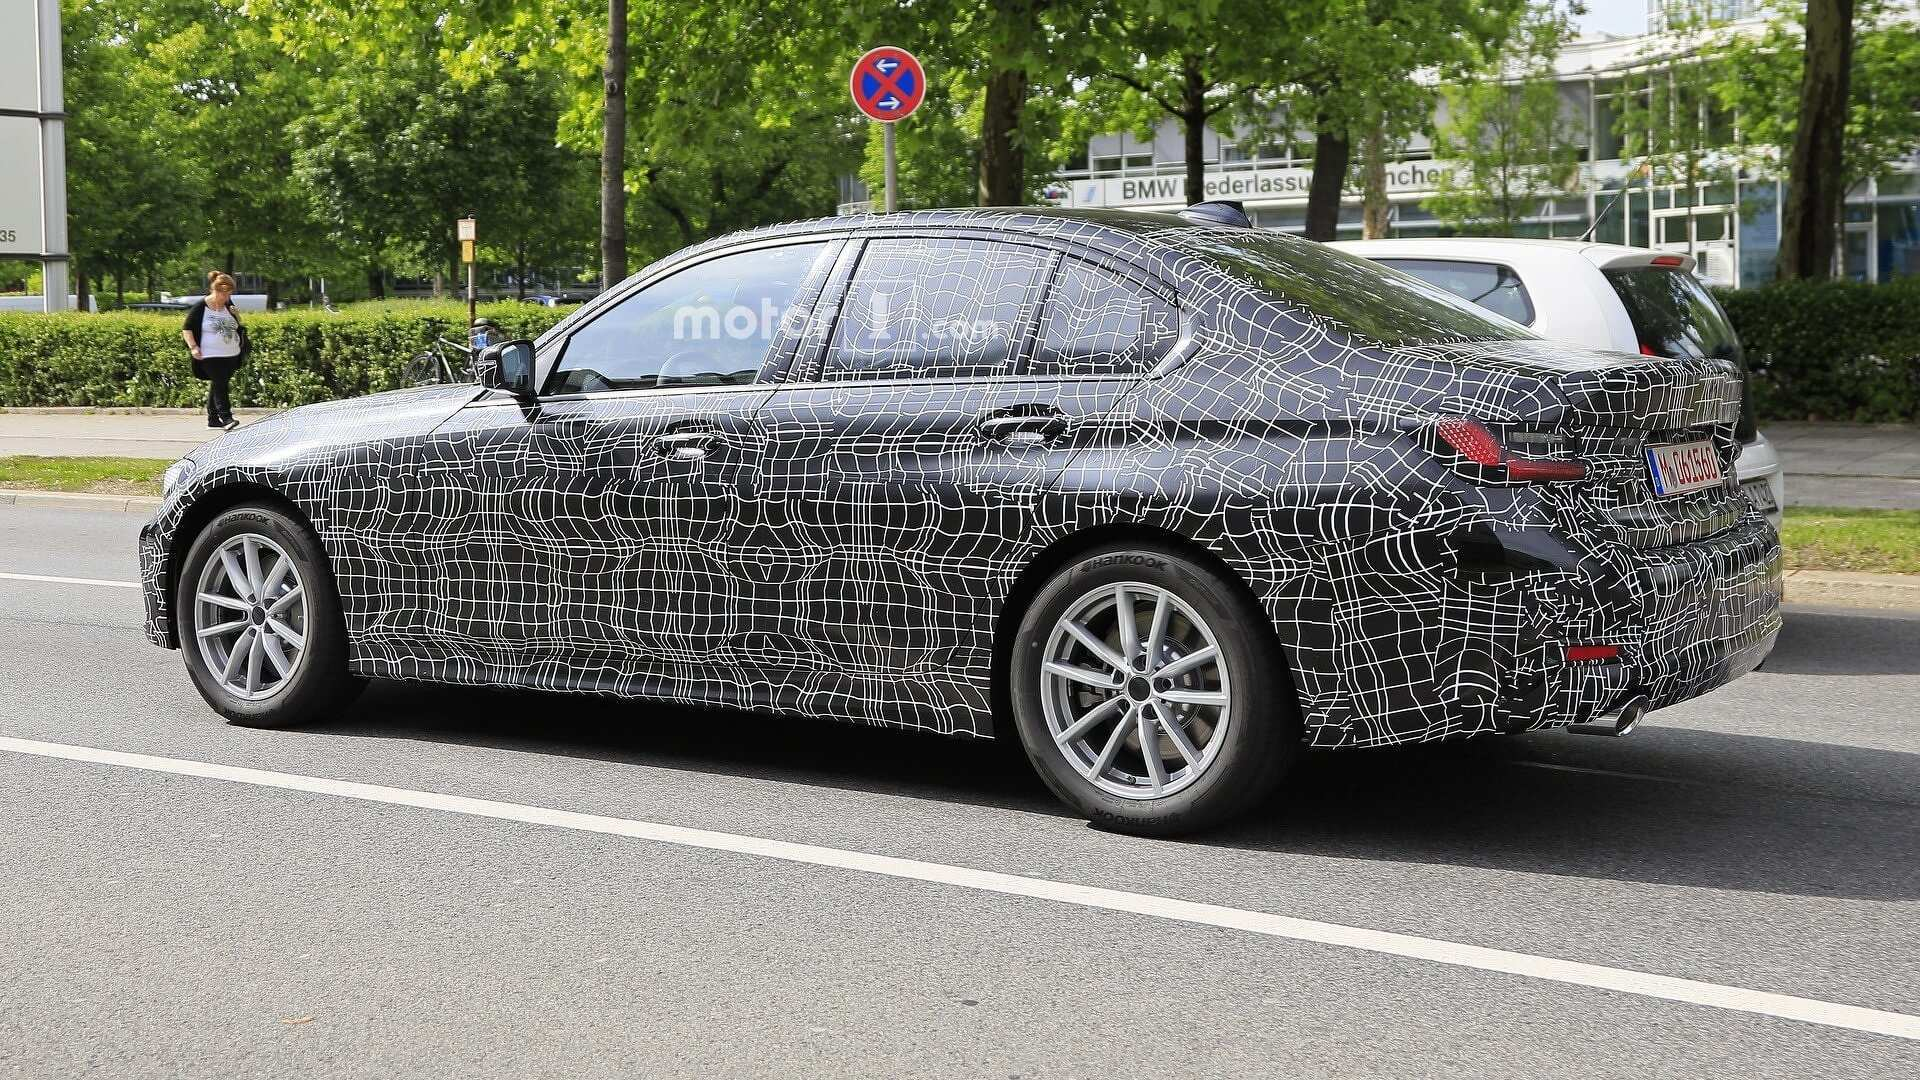 85 All New 2019 Bmw 3 Series Electric Spy Shoot Exterior and Interior by 2019 Bmw 3 Series Electric Spy Shoot